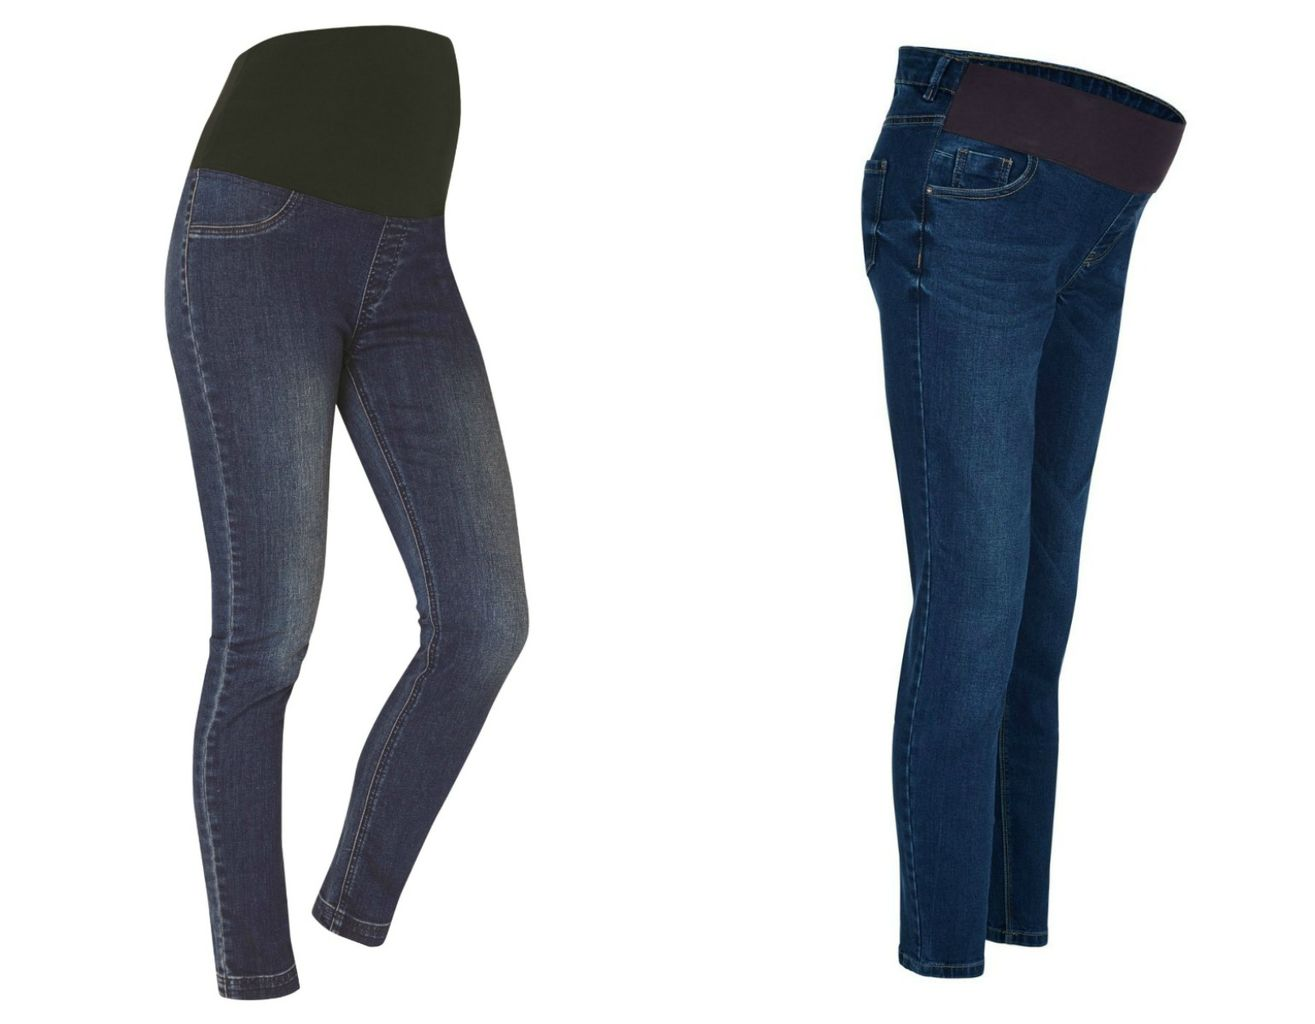 35e52fbcb5c1e From left: JoJo Maman Bébé Skinny Jeans Vintage; New Look Maternity Navy  Under Bump Skinny Jeans © From left: JoJo Maman Bébé Skinny Jeans Vintage;  ...